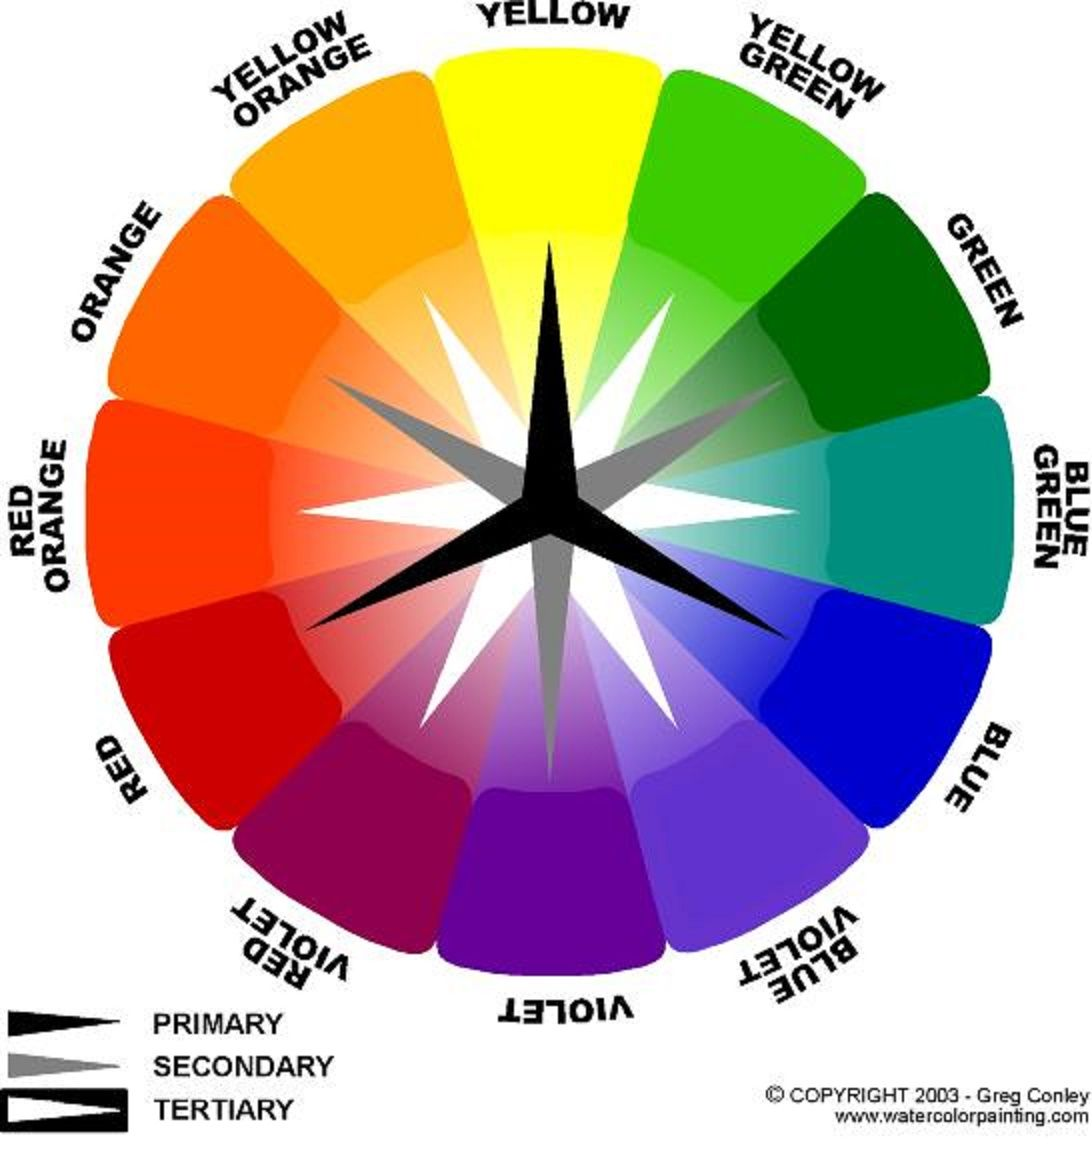 Color chart rainbow - The Color Wheel The 12 Part Color Wheel Is A Representation Of The Visual Spectrum